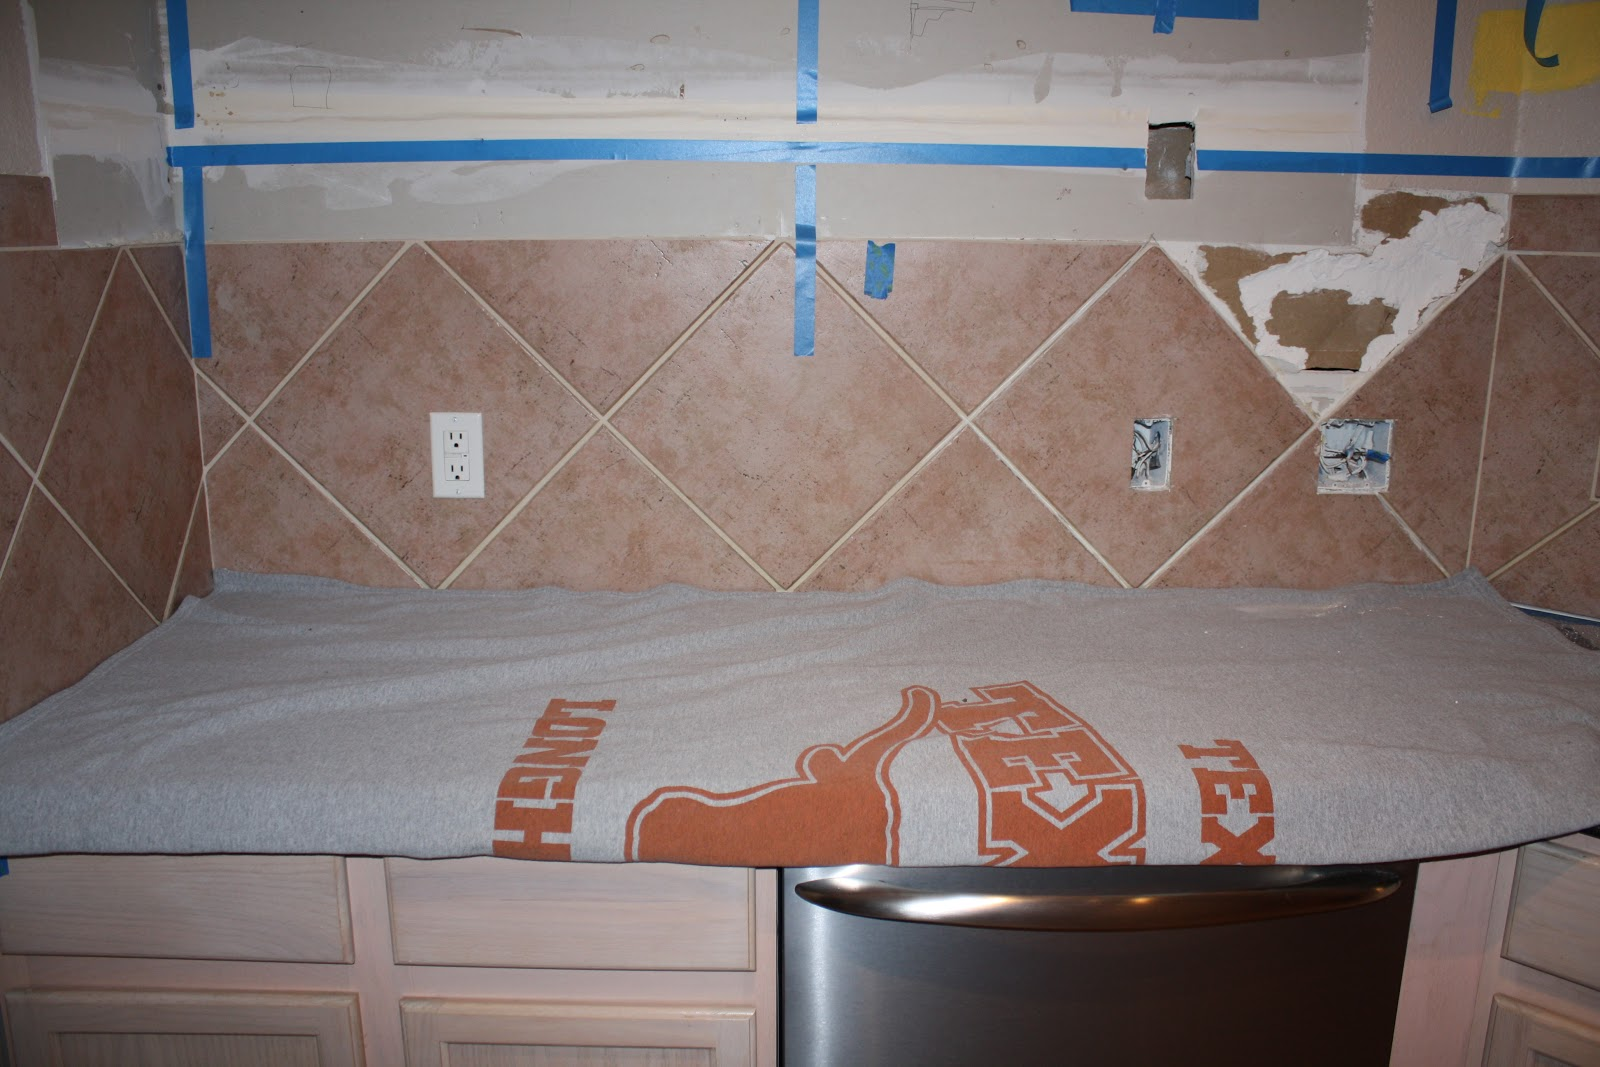 How to remove backsplash tiles - On The Ends Of The Backsplash There Are Just Two Extra Tiles That Are Higher Than The Rest So Jerry Told Me To Remove Those By Cutting Through The Grout